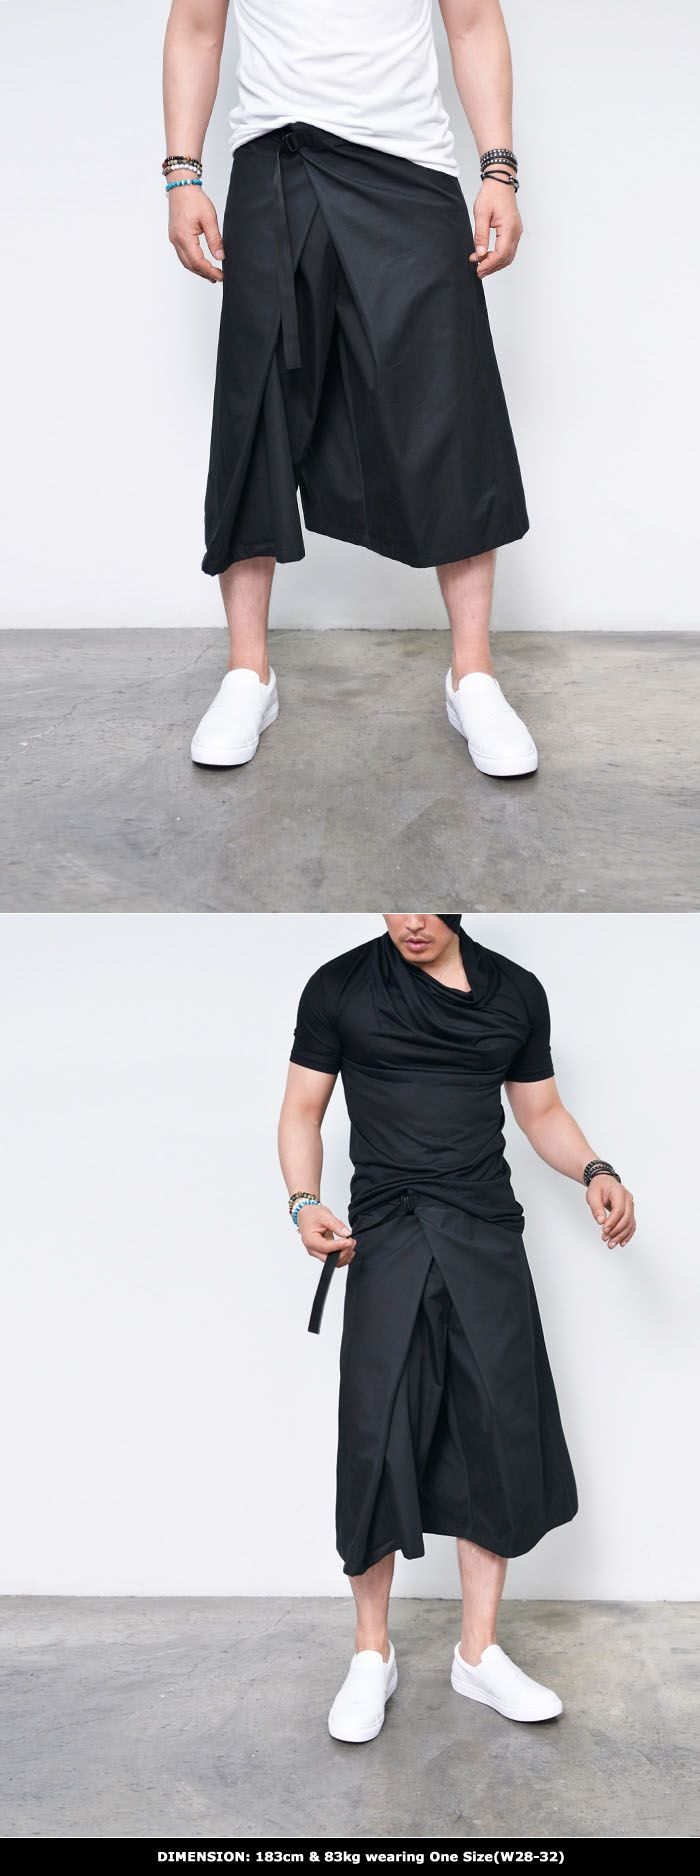 Super Stylish Wrap Skirt Pants-Pants 224 - GUYLOOK